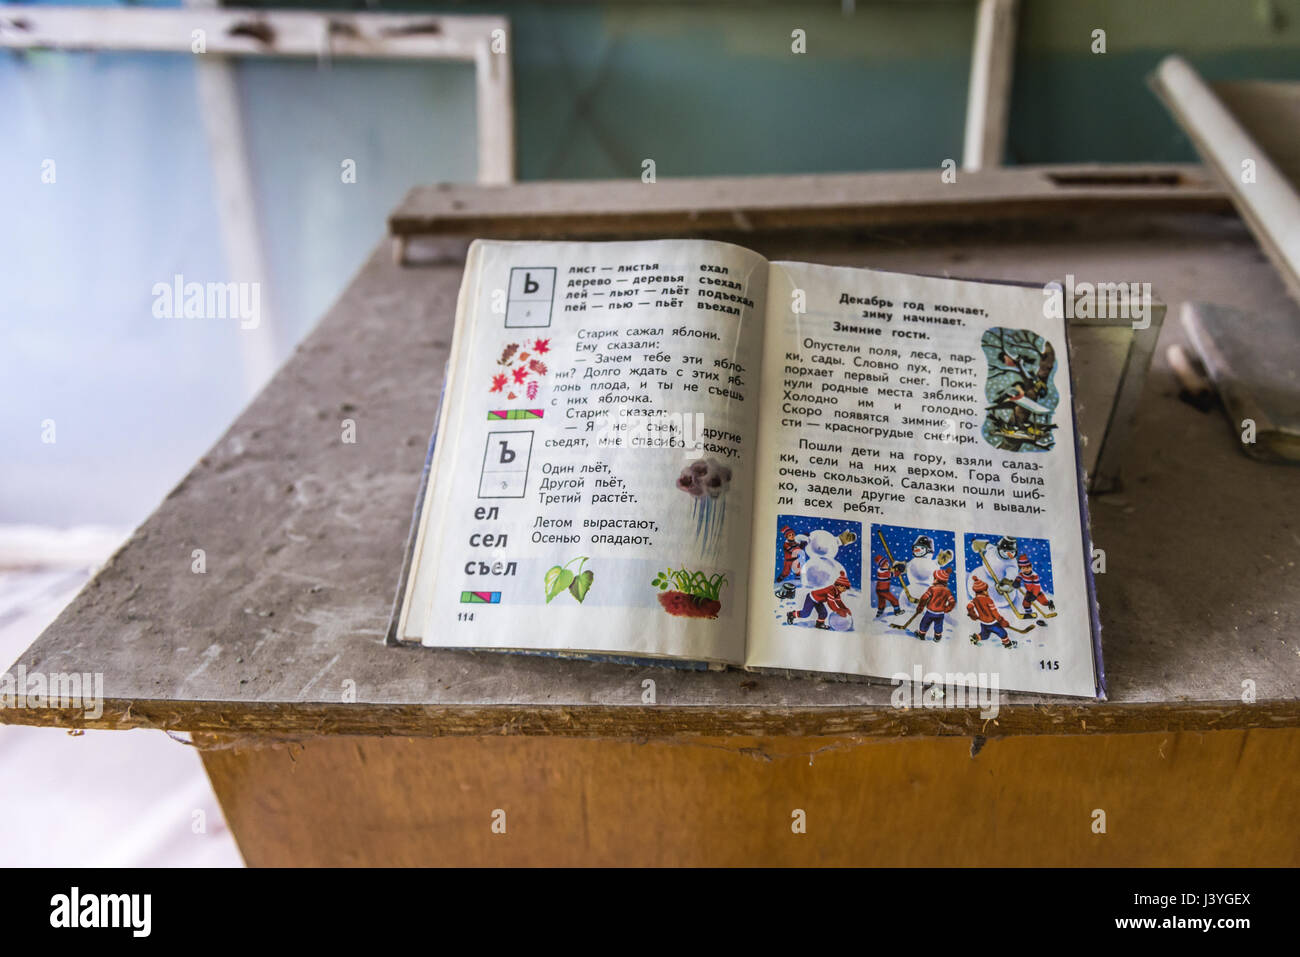 Primer book in High school No 3 in Pripyat ghost city of Chernobyl Nuclear Power Plant Zone of Alienation around - Stock Image